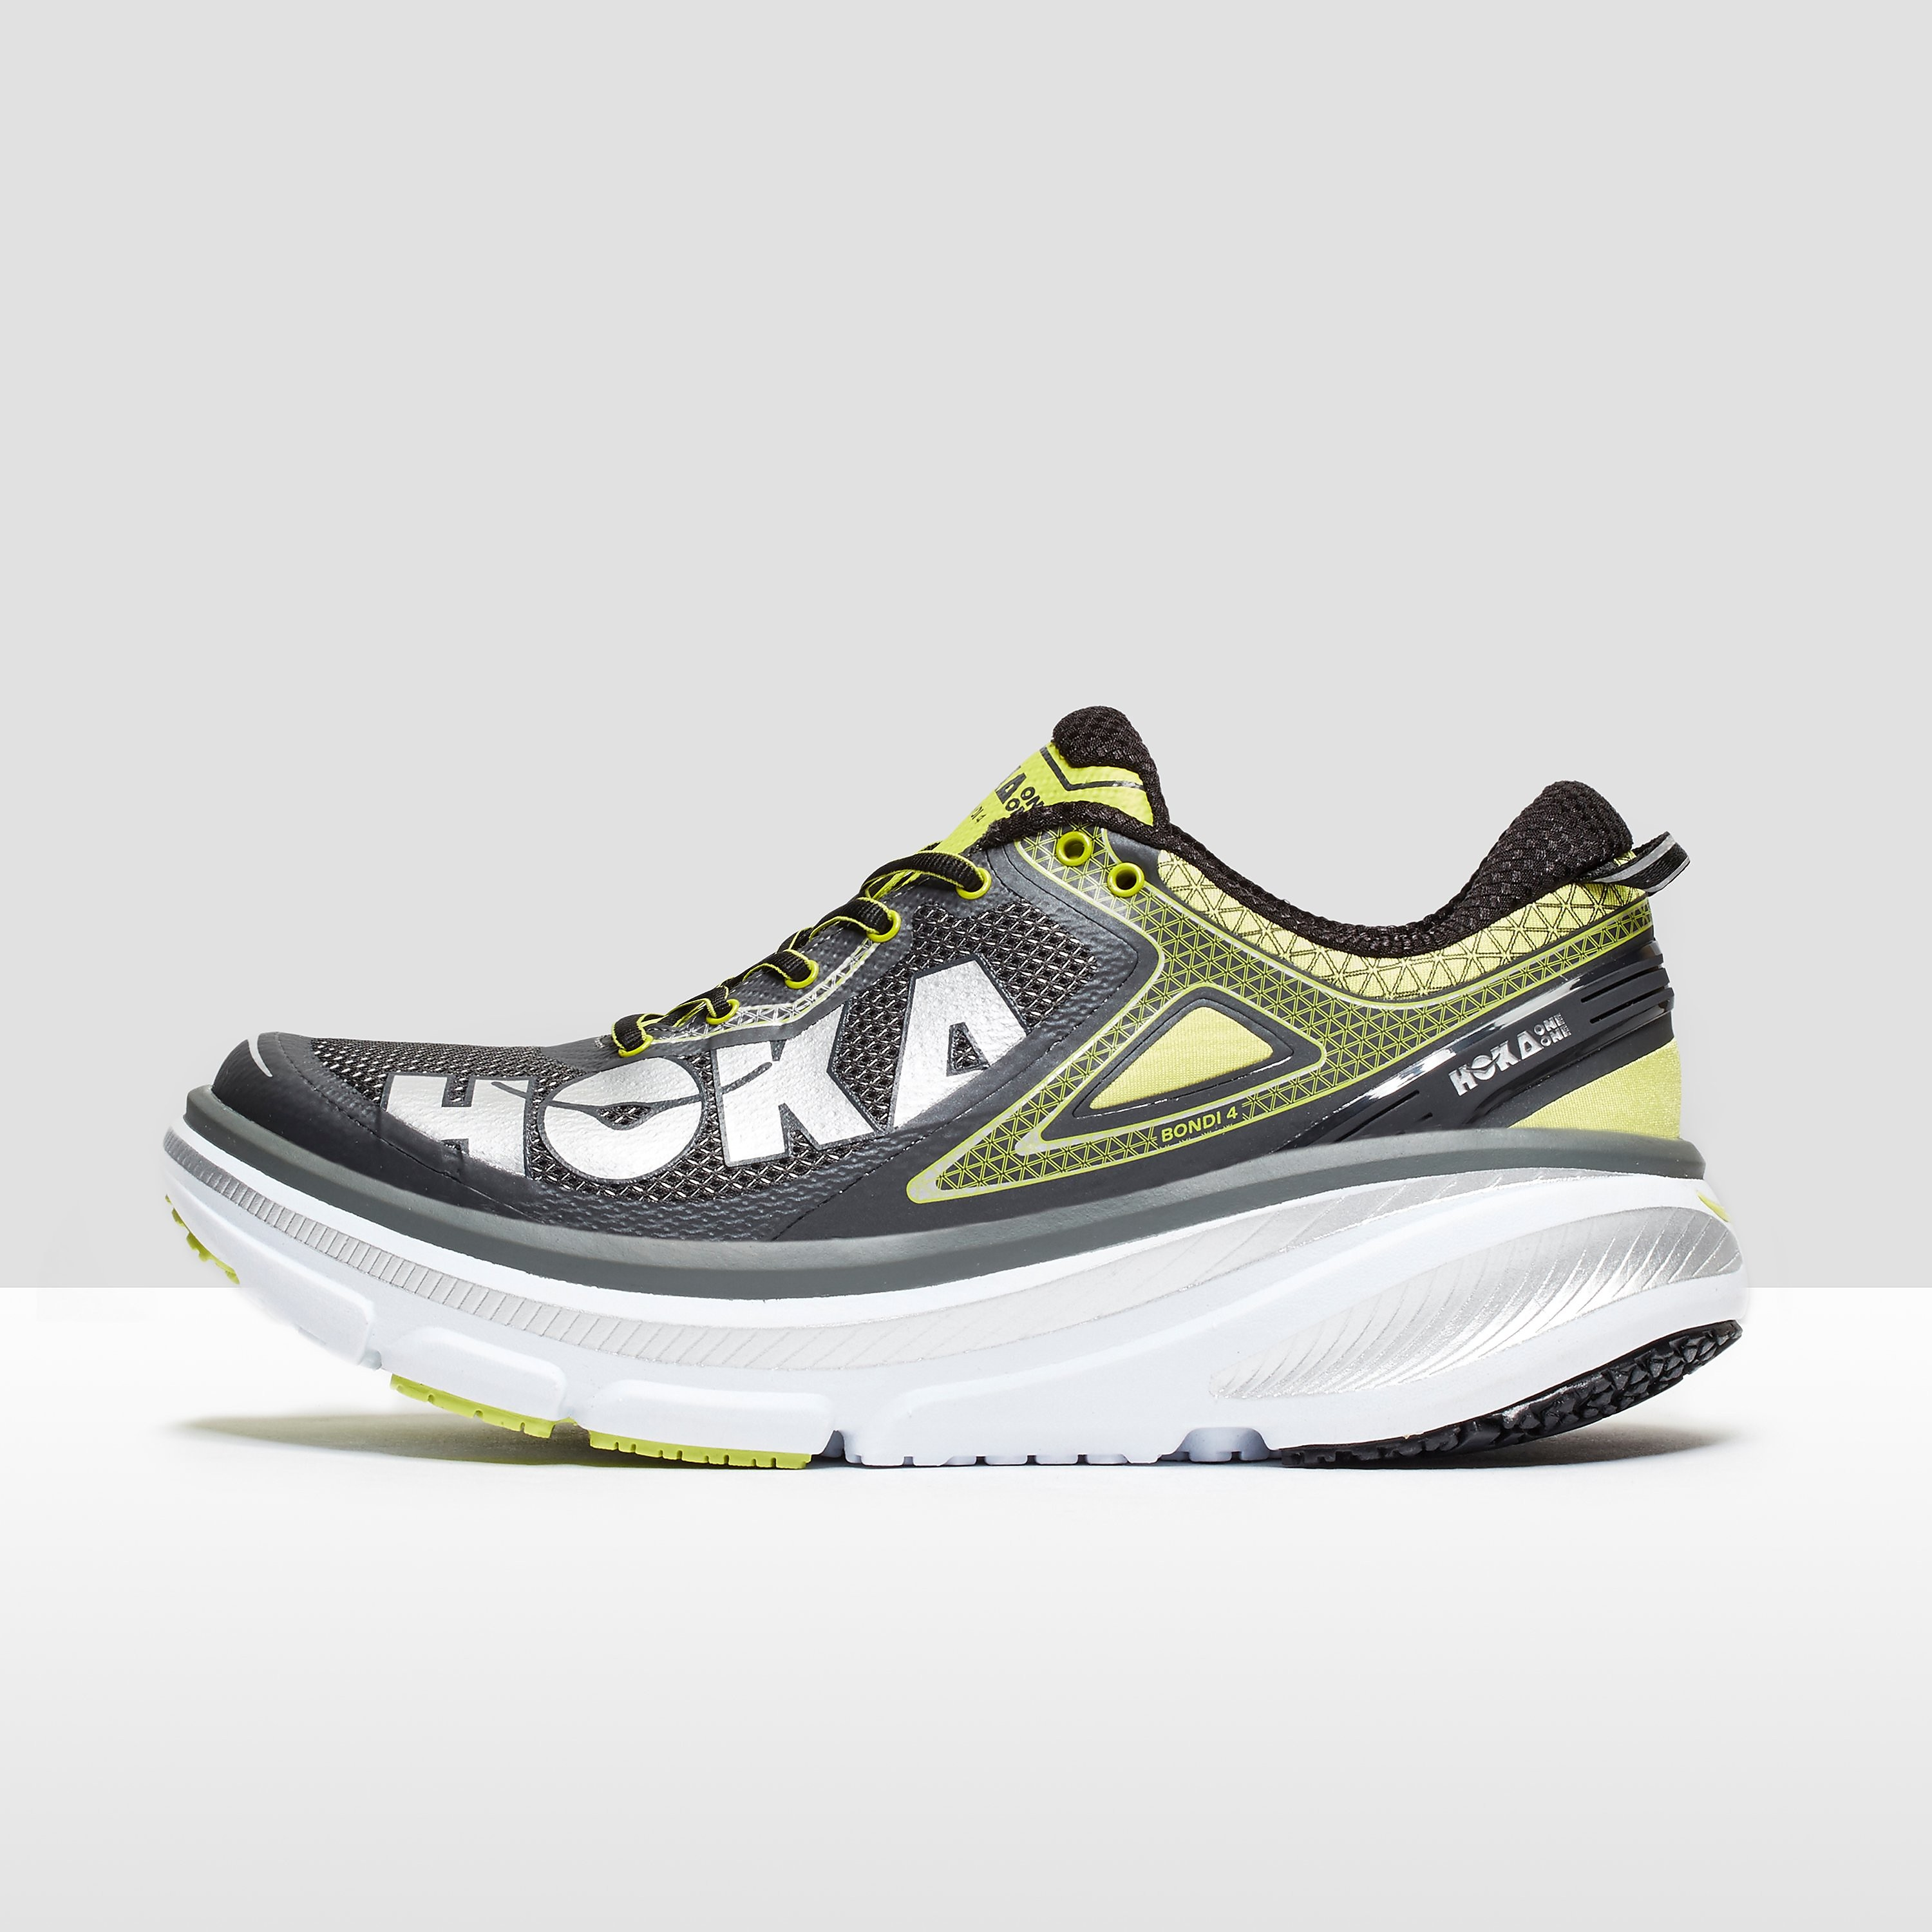 Hoka one one BONDI 4 Men's Running Shoe